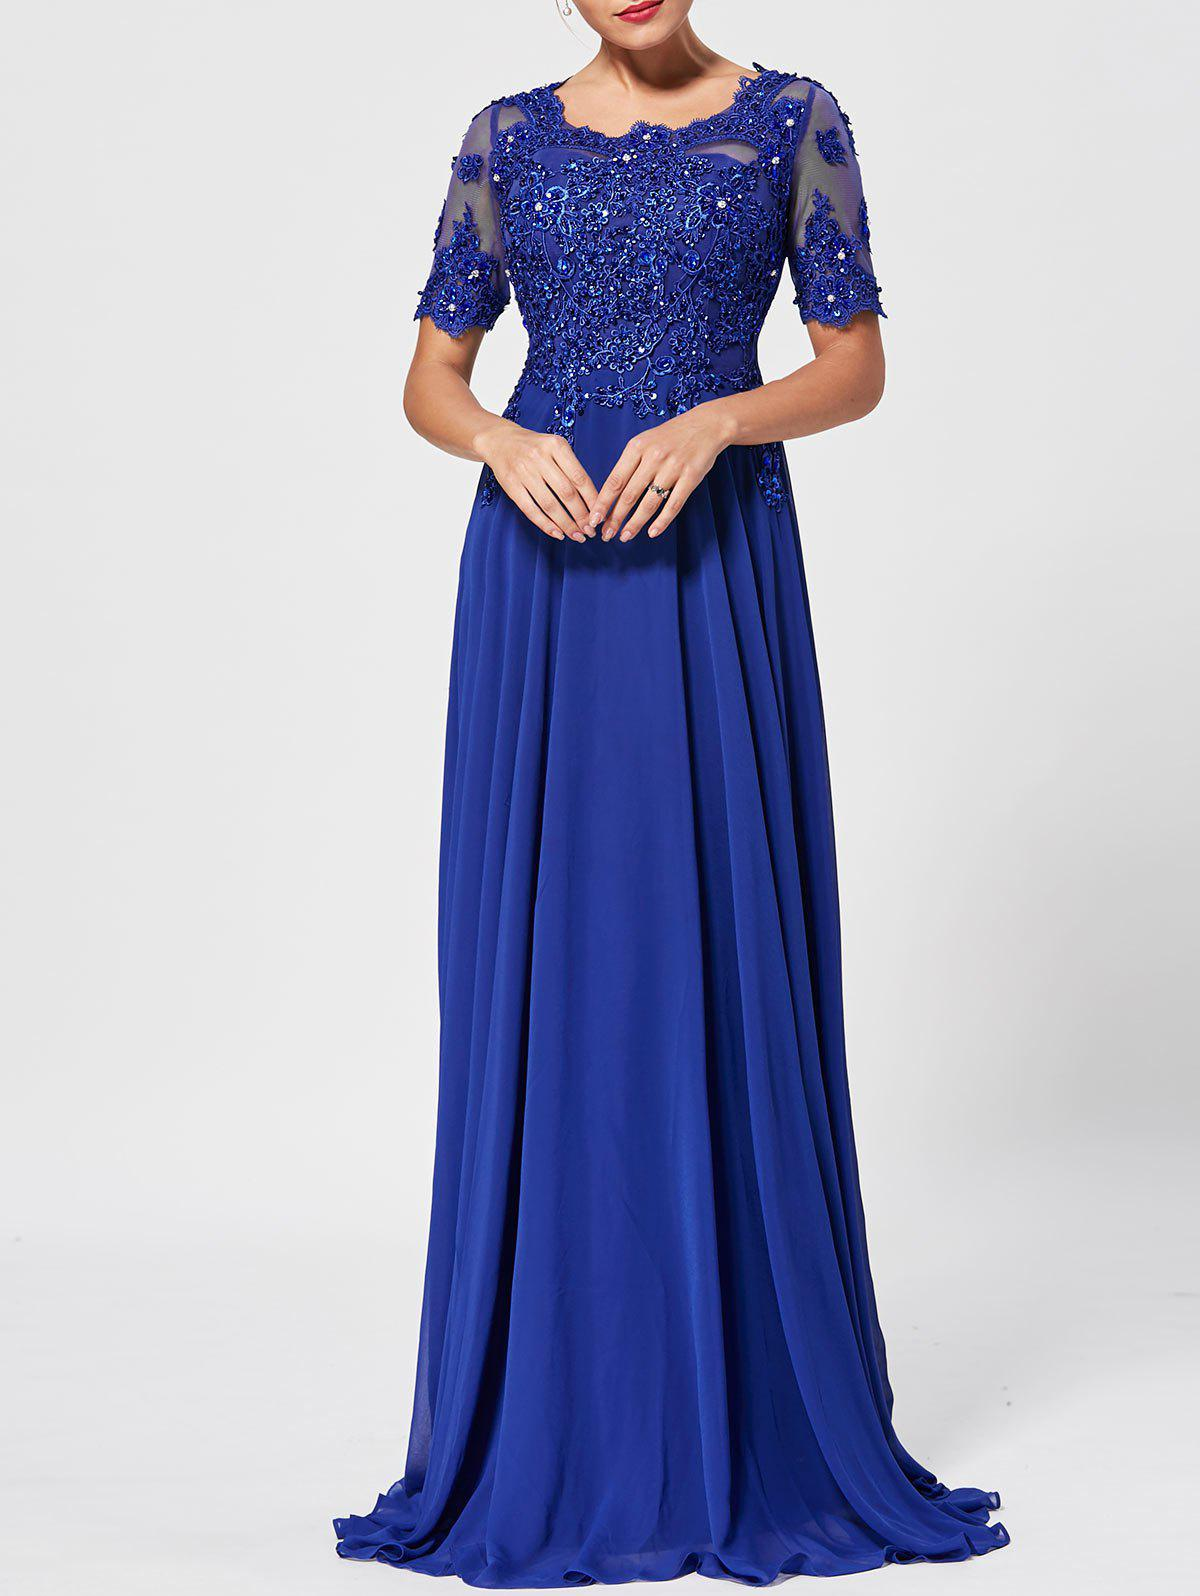 Hot Floral Lace Rhinestone Maxi Prom Evening Dress